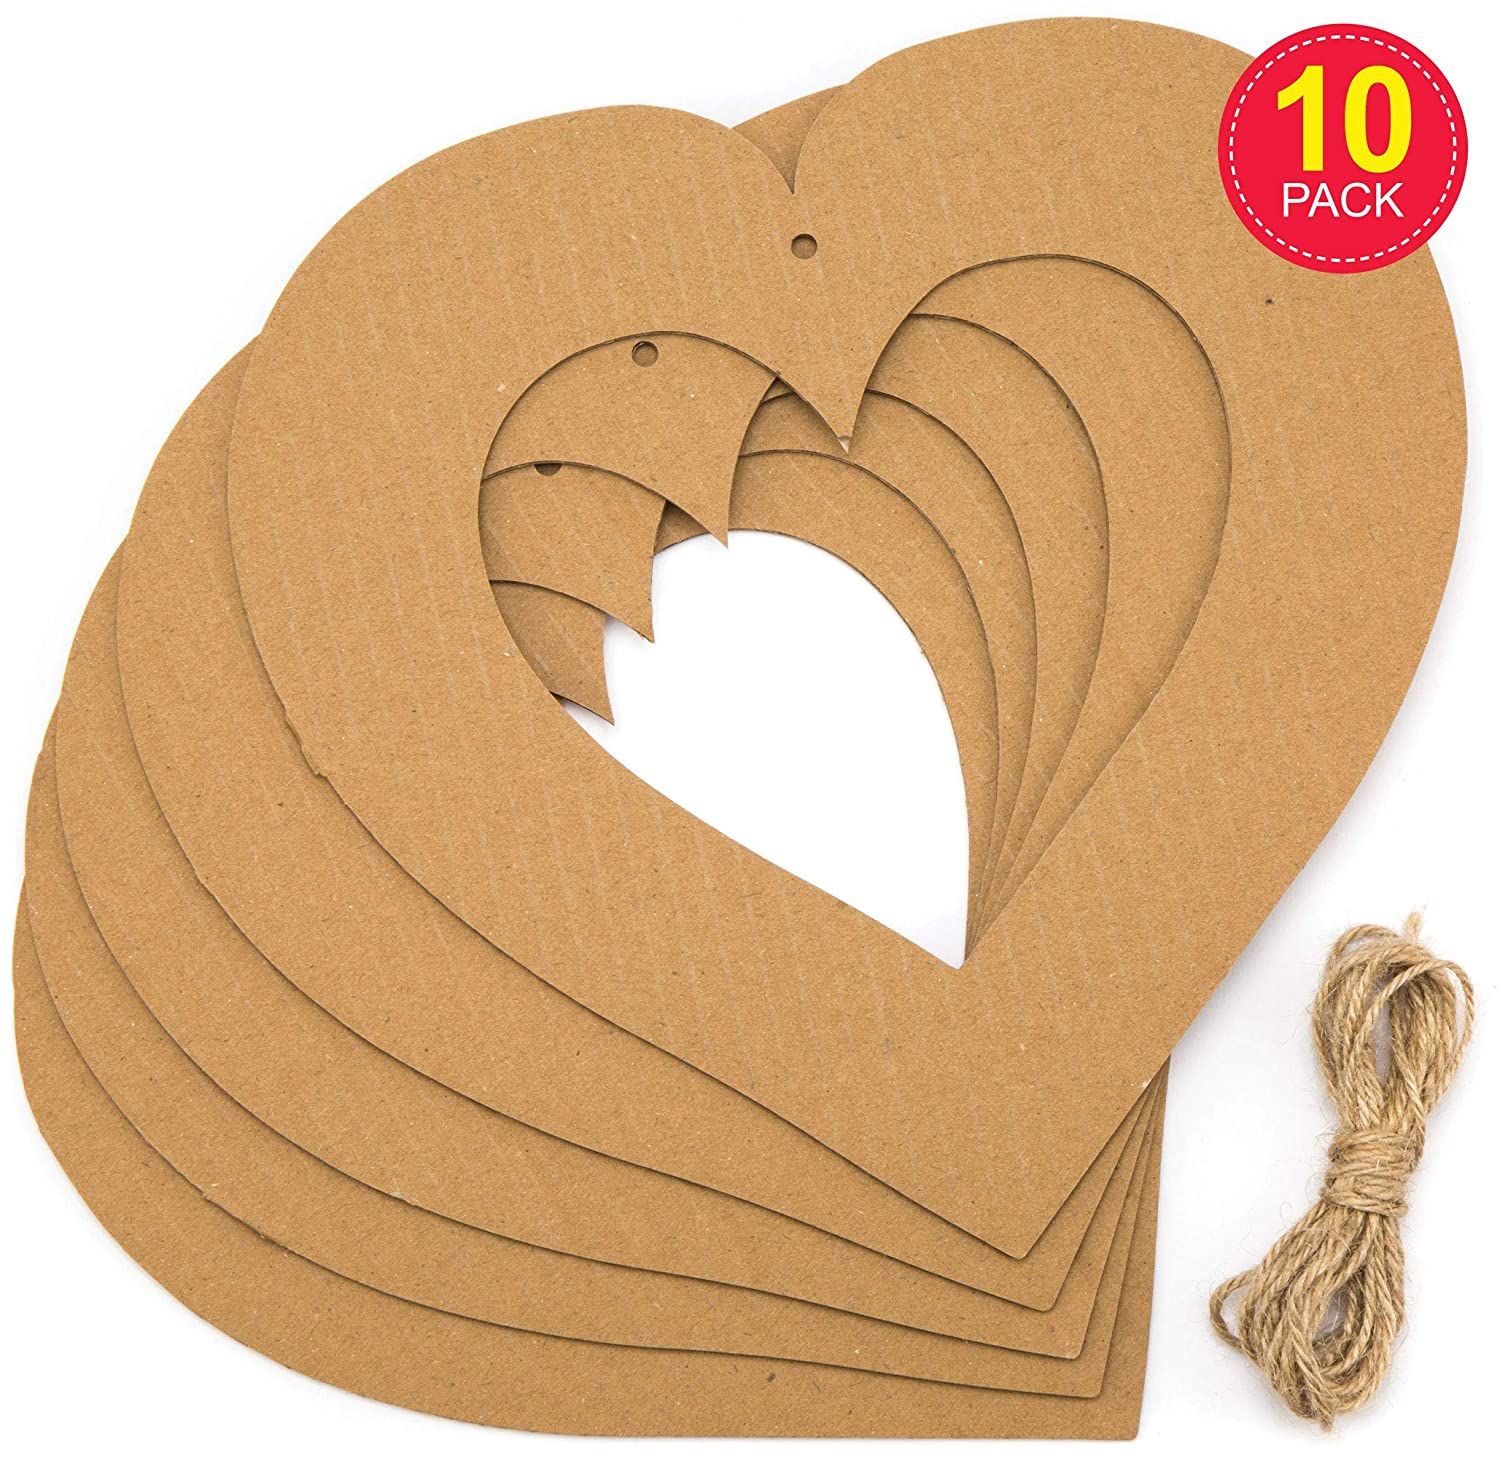 Berries Baker Ross AX854 Heart Rattan Wreaths Pine Branches and More Eco Friendly Material Decorate with Pinecones Perfect for Seasonal Displays Pack of 2